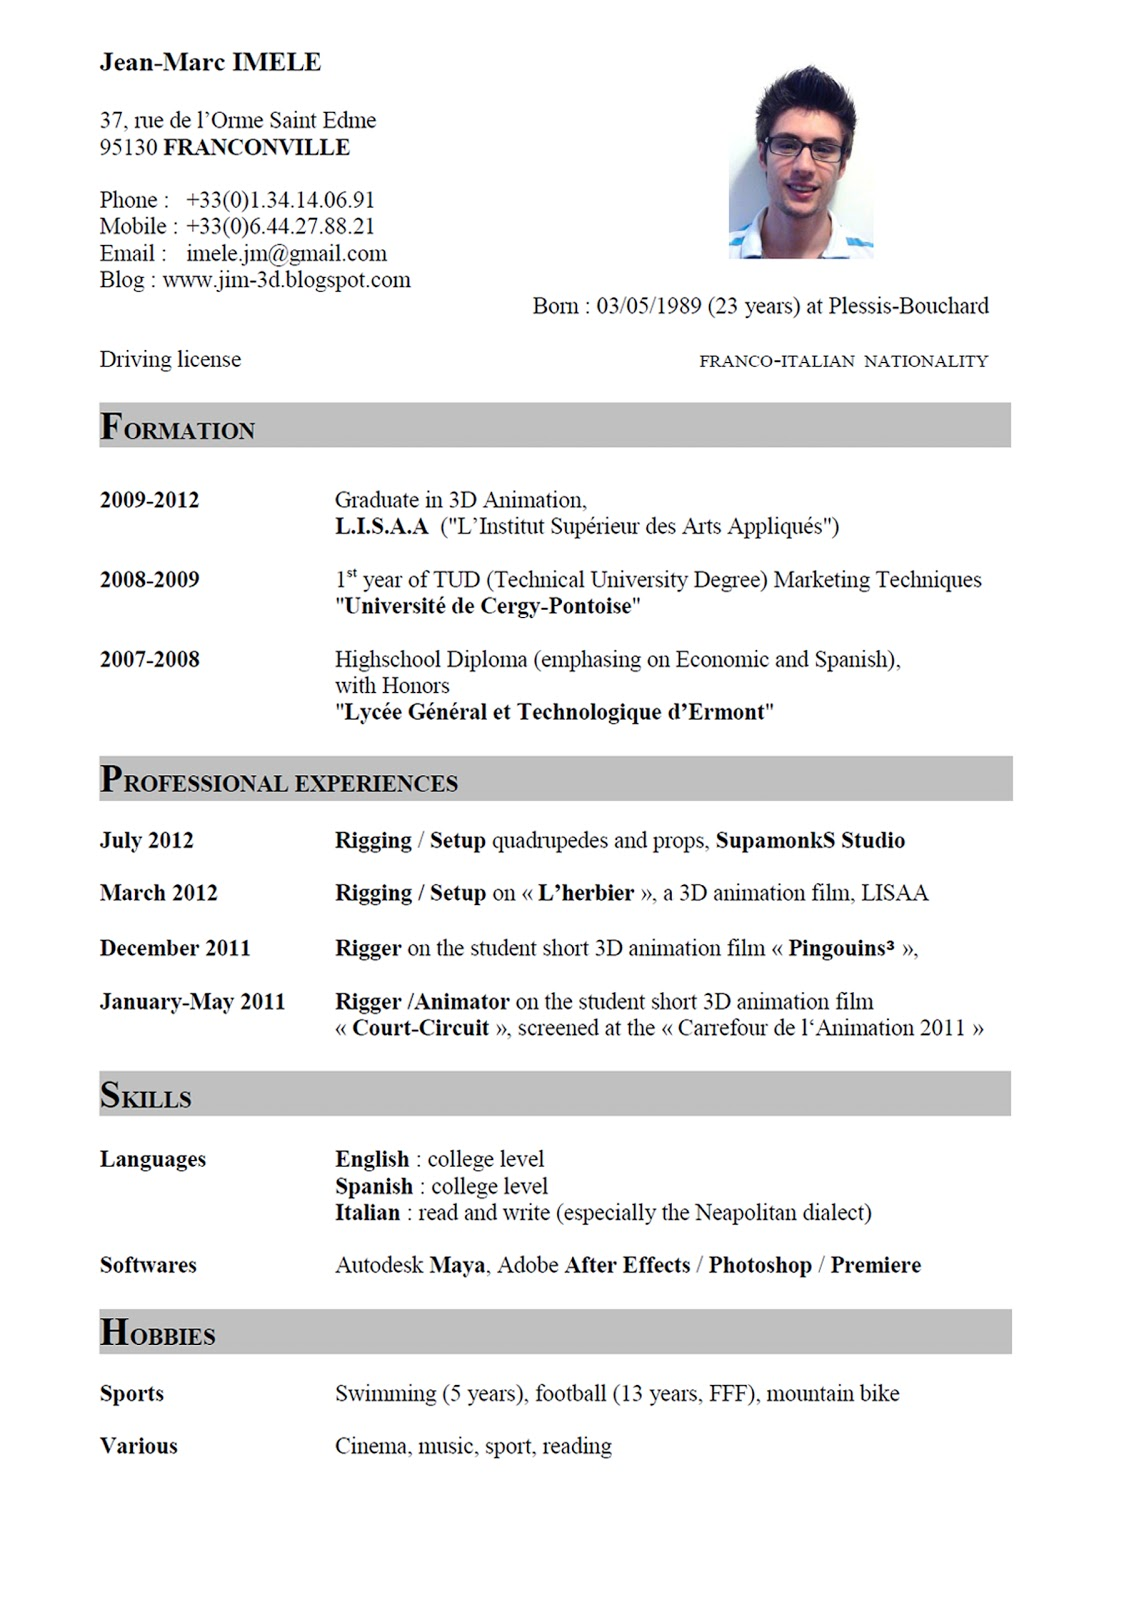 cv sample of english teacher profesional resume for job cv sample of english teacher english teacher cv template dayjob curriculum vitaejeanmarcimeleenglishjpg